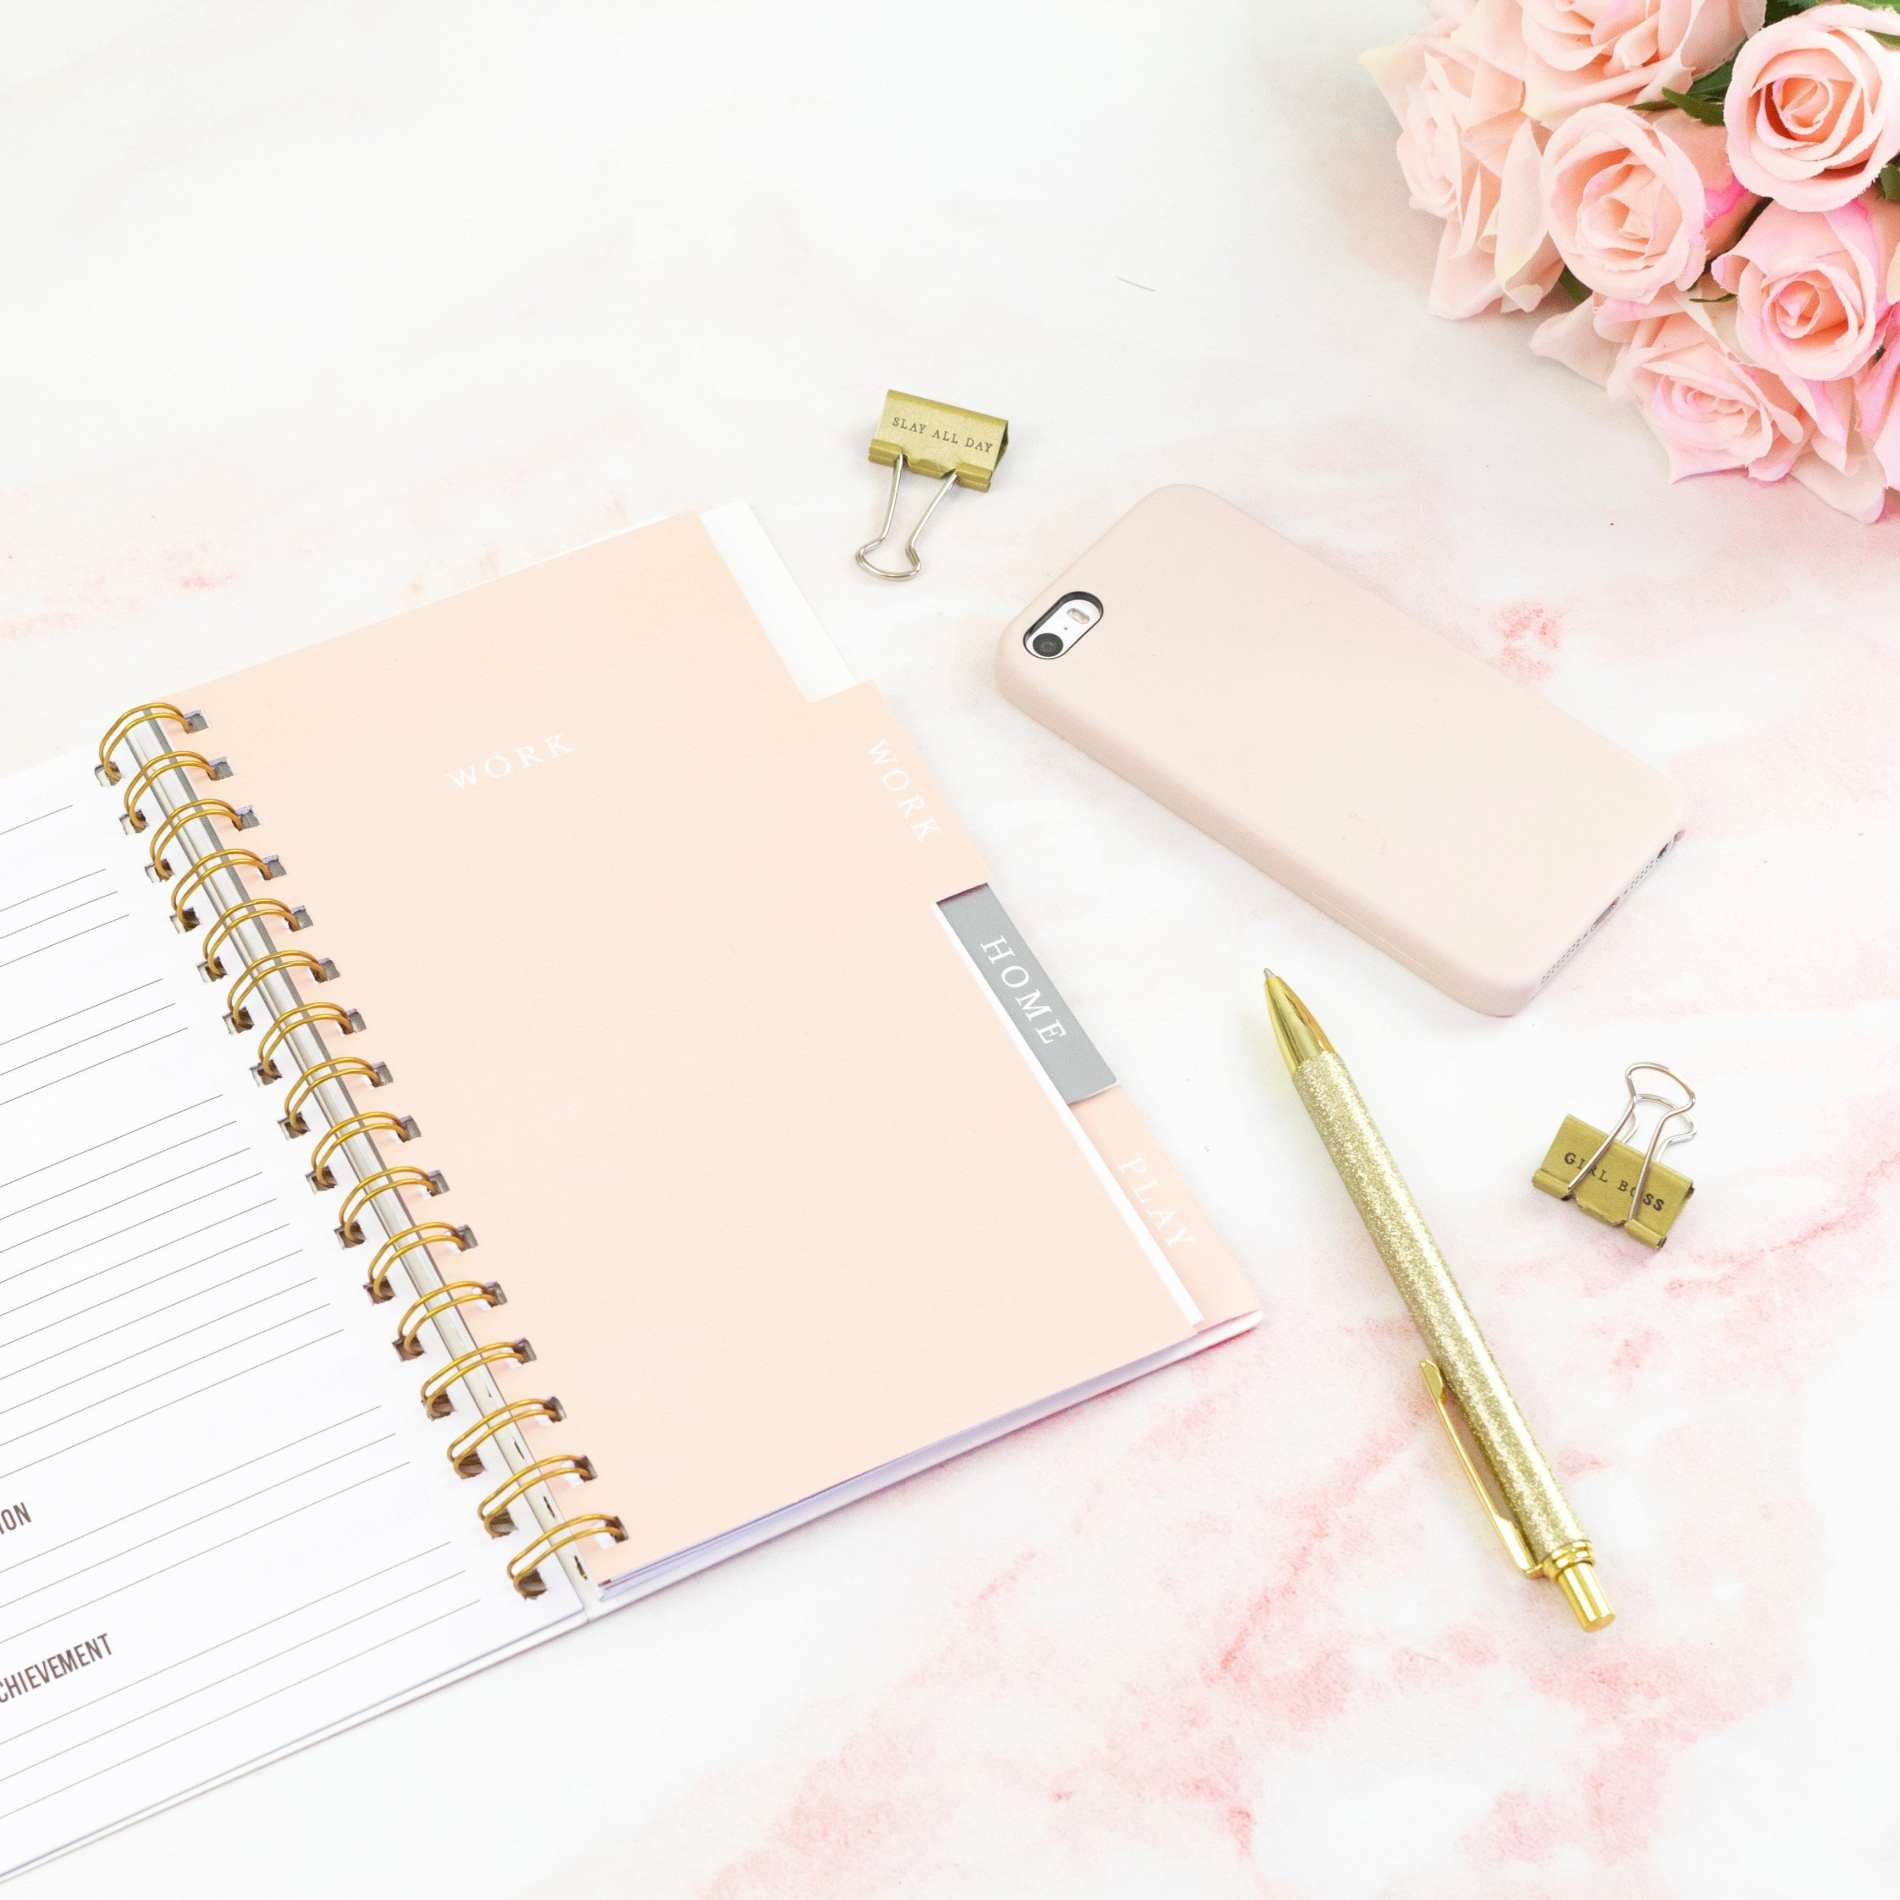 Blogging Tools And Resources For Every Amazing Lifestyle Blog